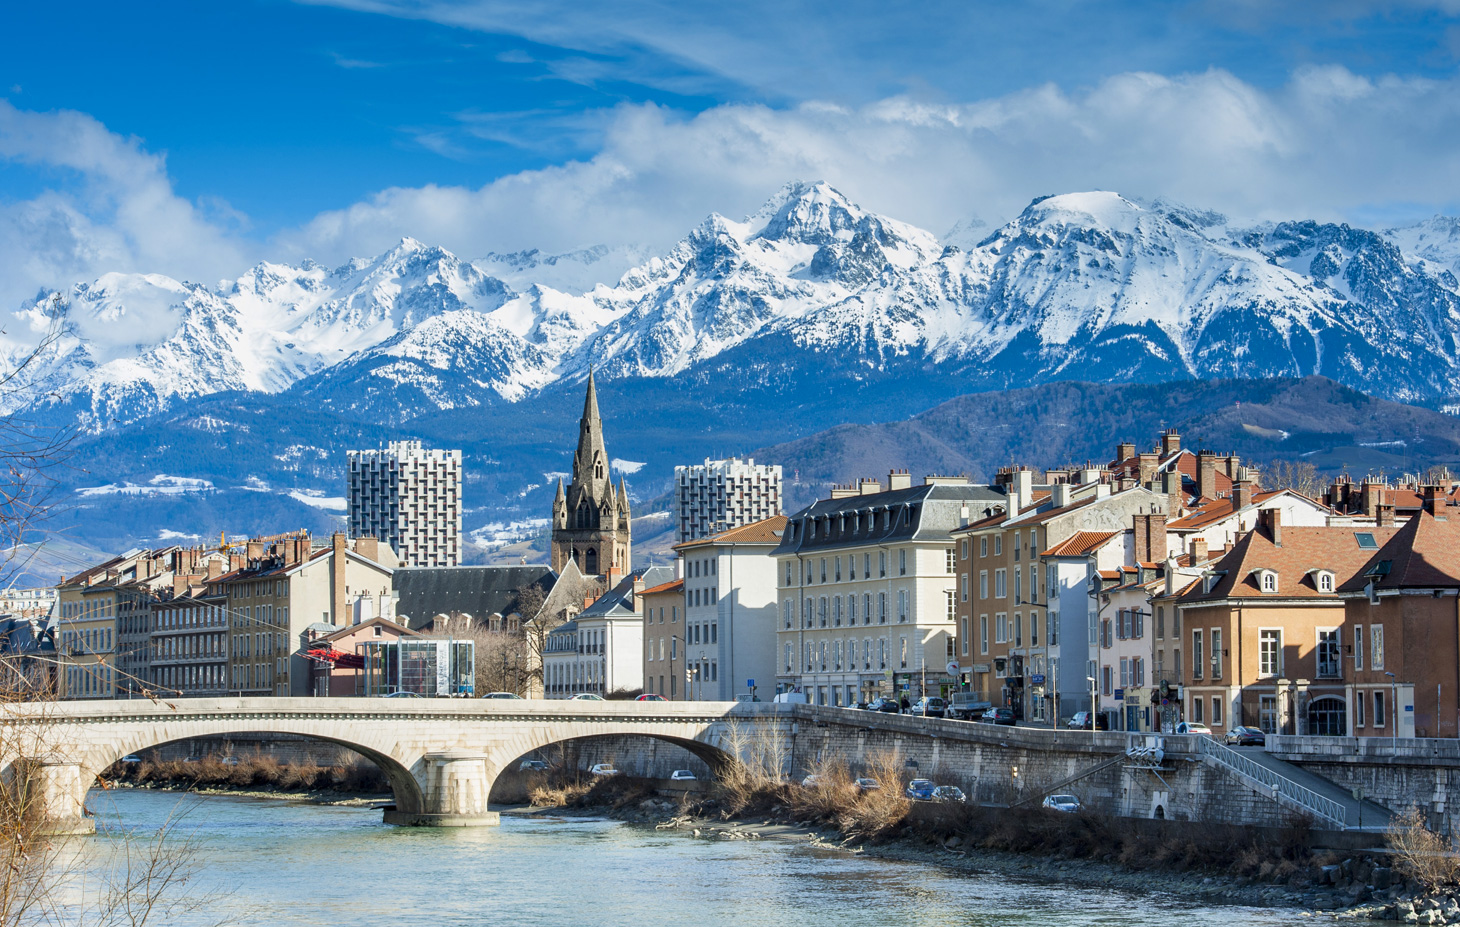 Come to Grenoble Alpes university